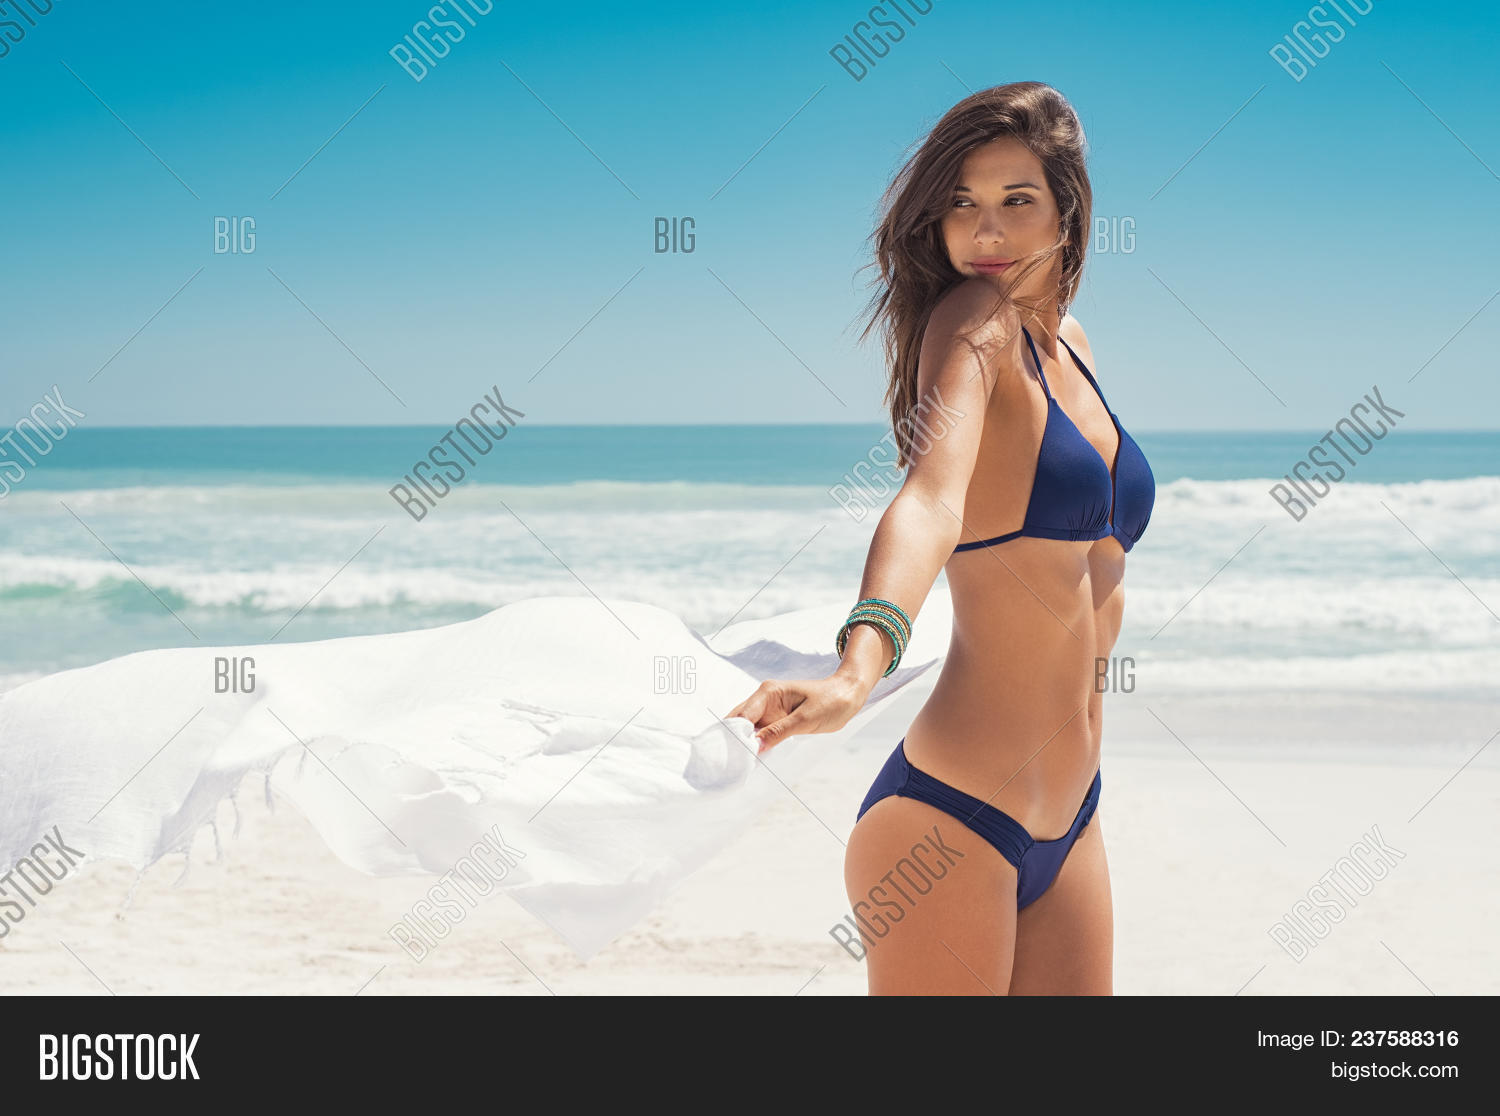 Simply matchless sexy latina on beach